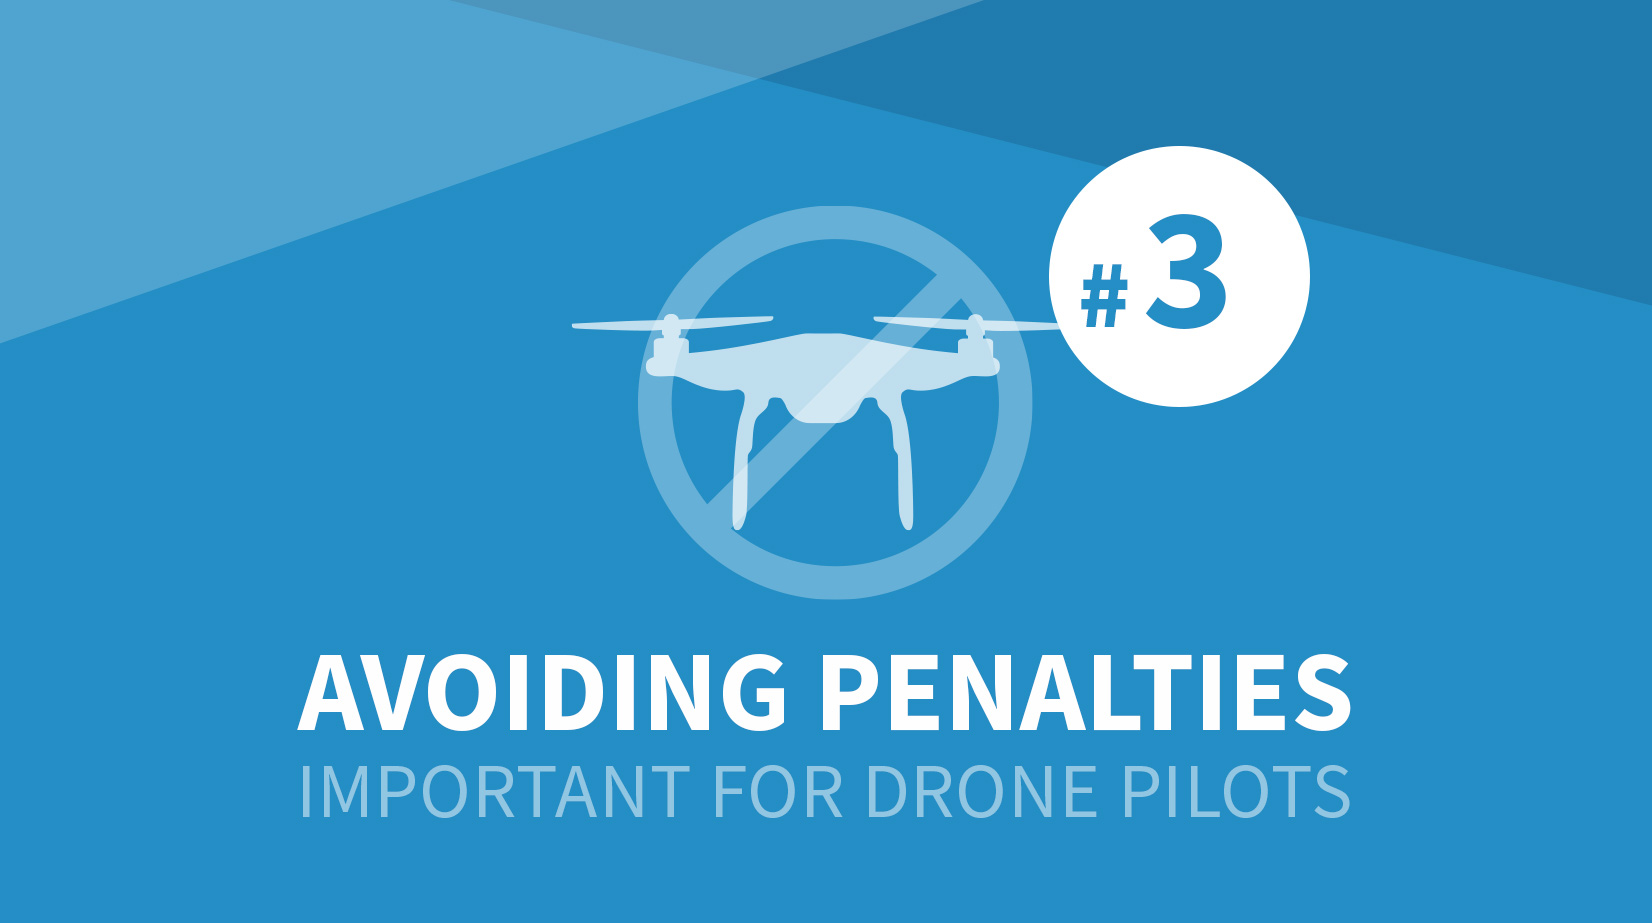 Penalties for Drone Pilots